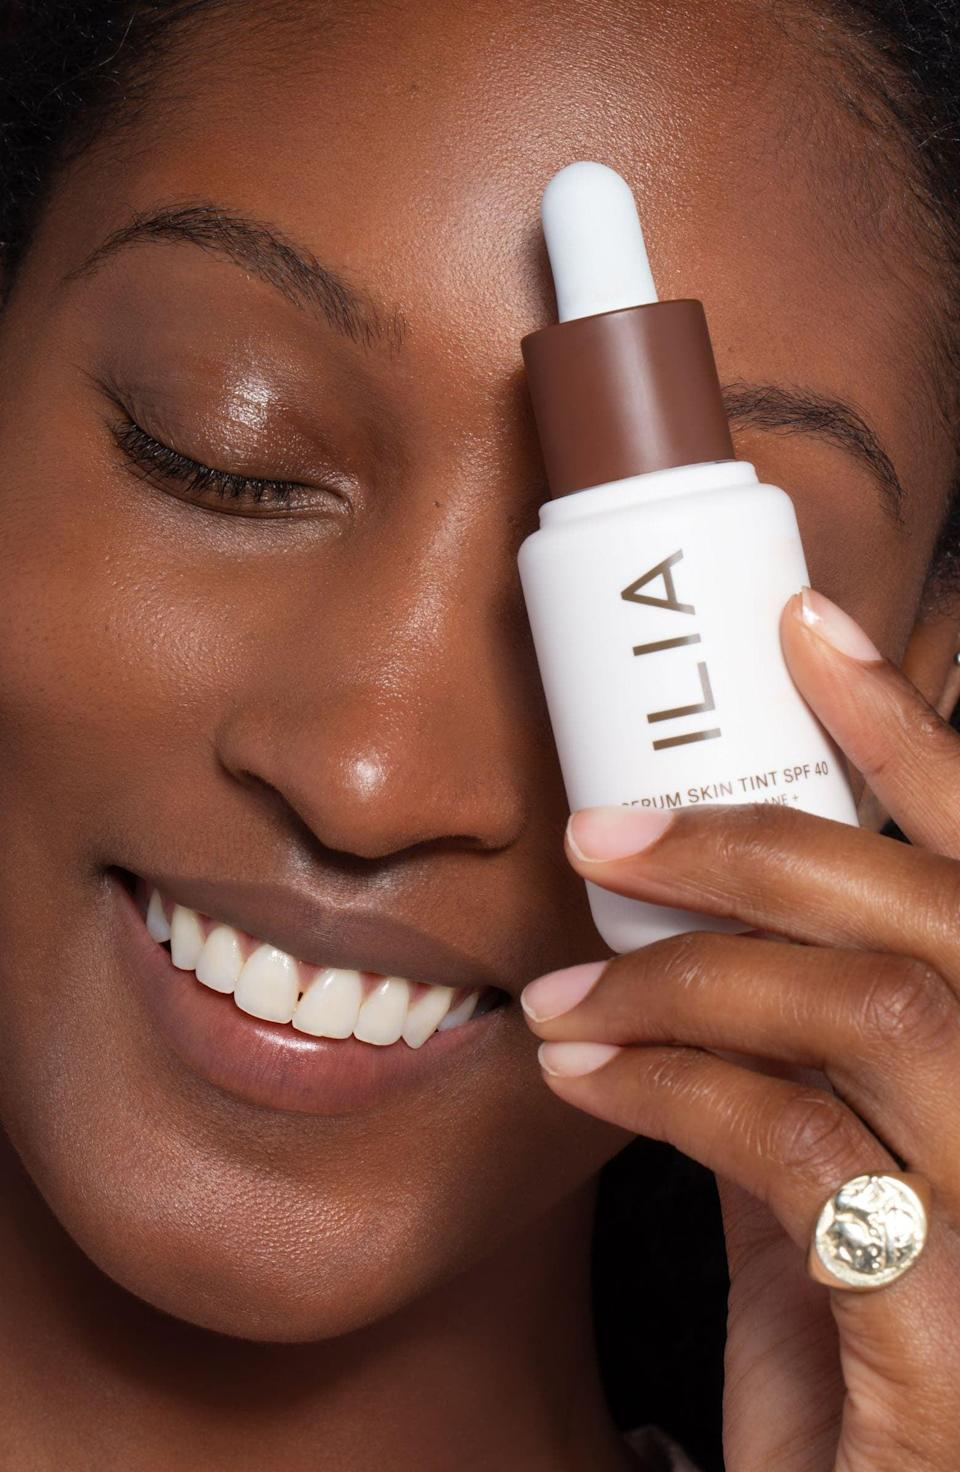 <p>The bestselling <span>Ilia Super Serum Skin Tint SPF 40</span> ($46) is the complexion product you need to embrace skin-imalism! It's hydrating and has a SPF protection - what more could you ask for?</p>